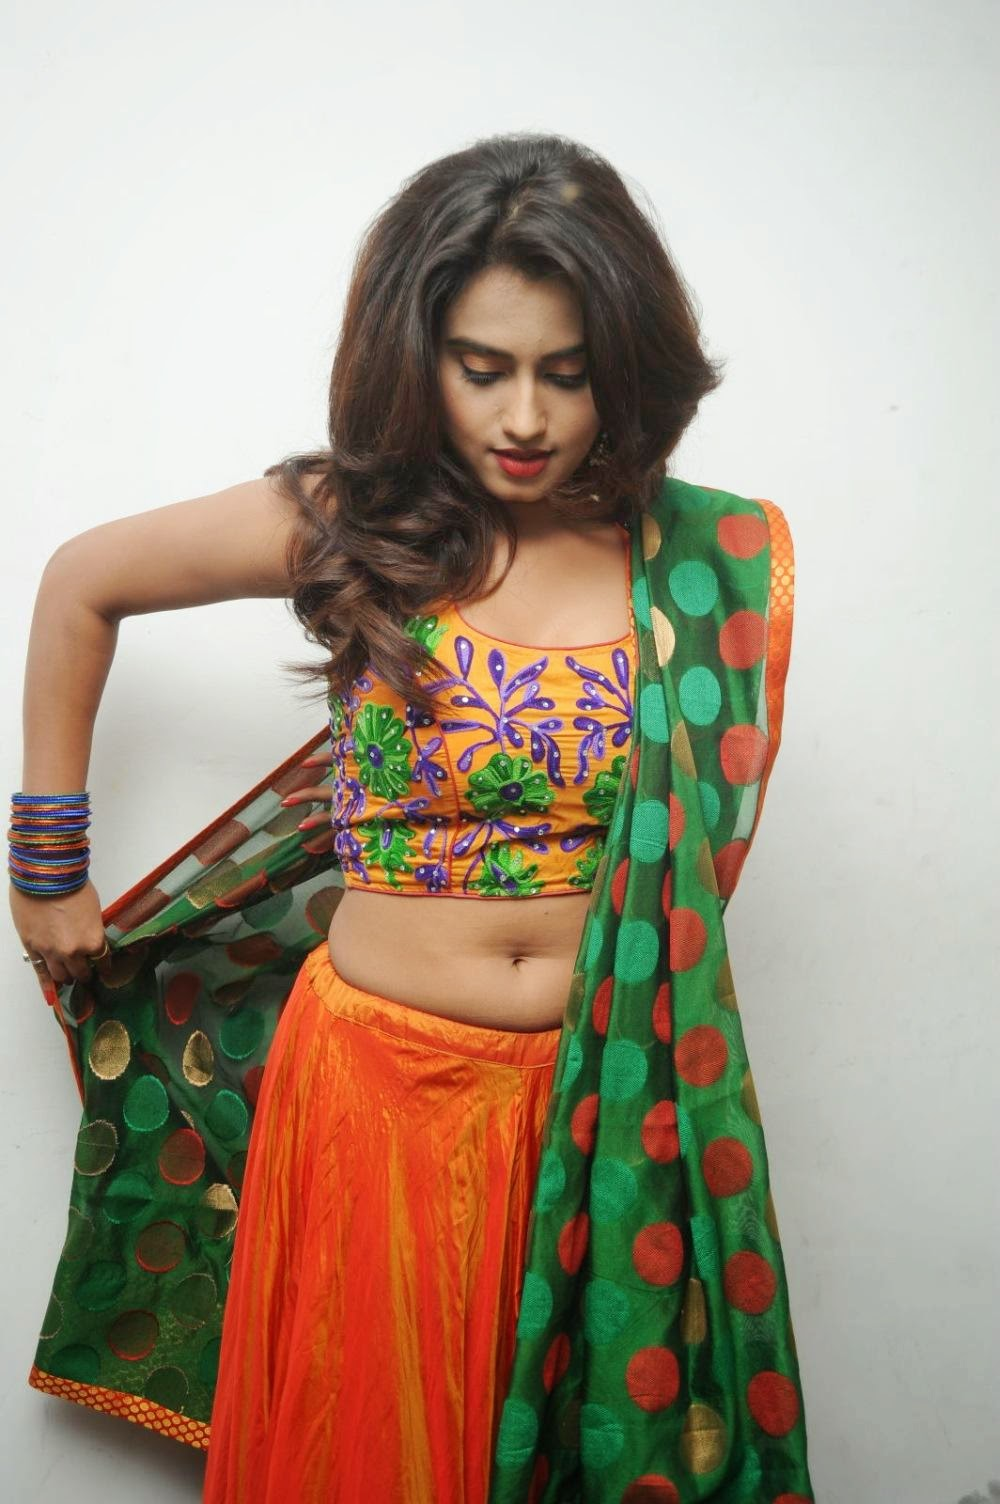 Dimple Chopda navel show